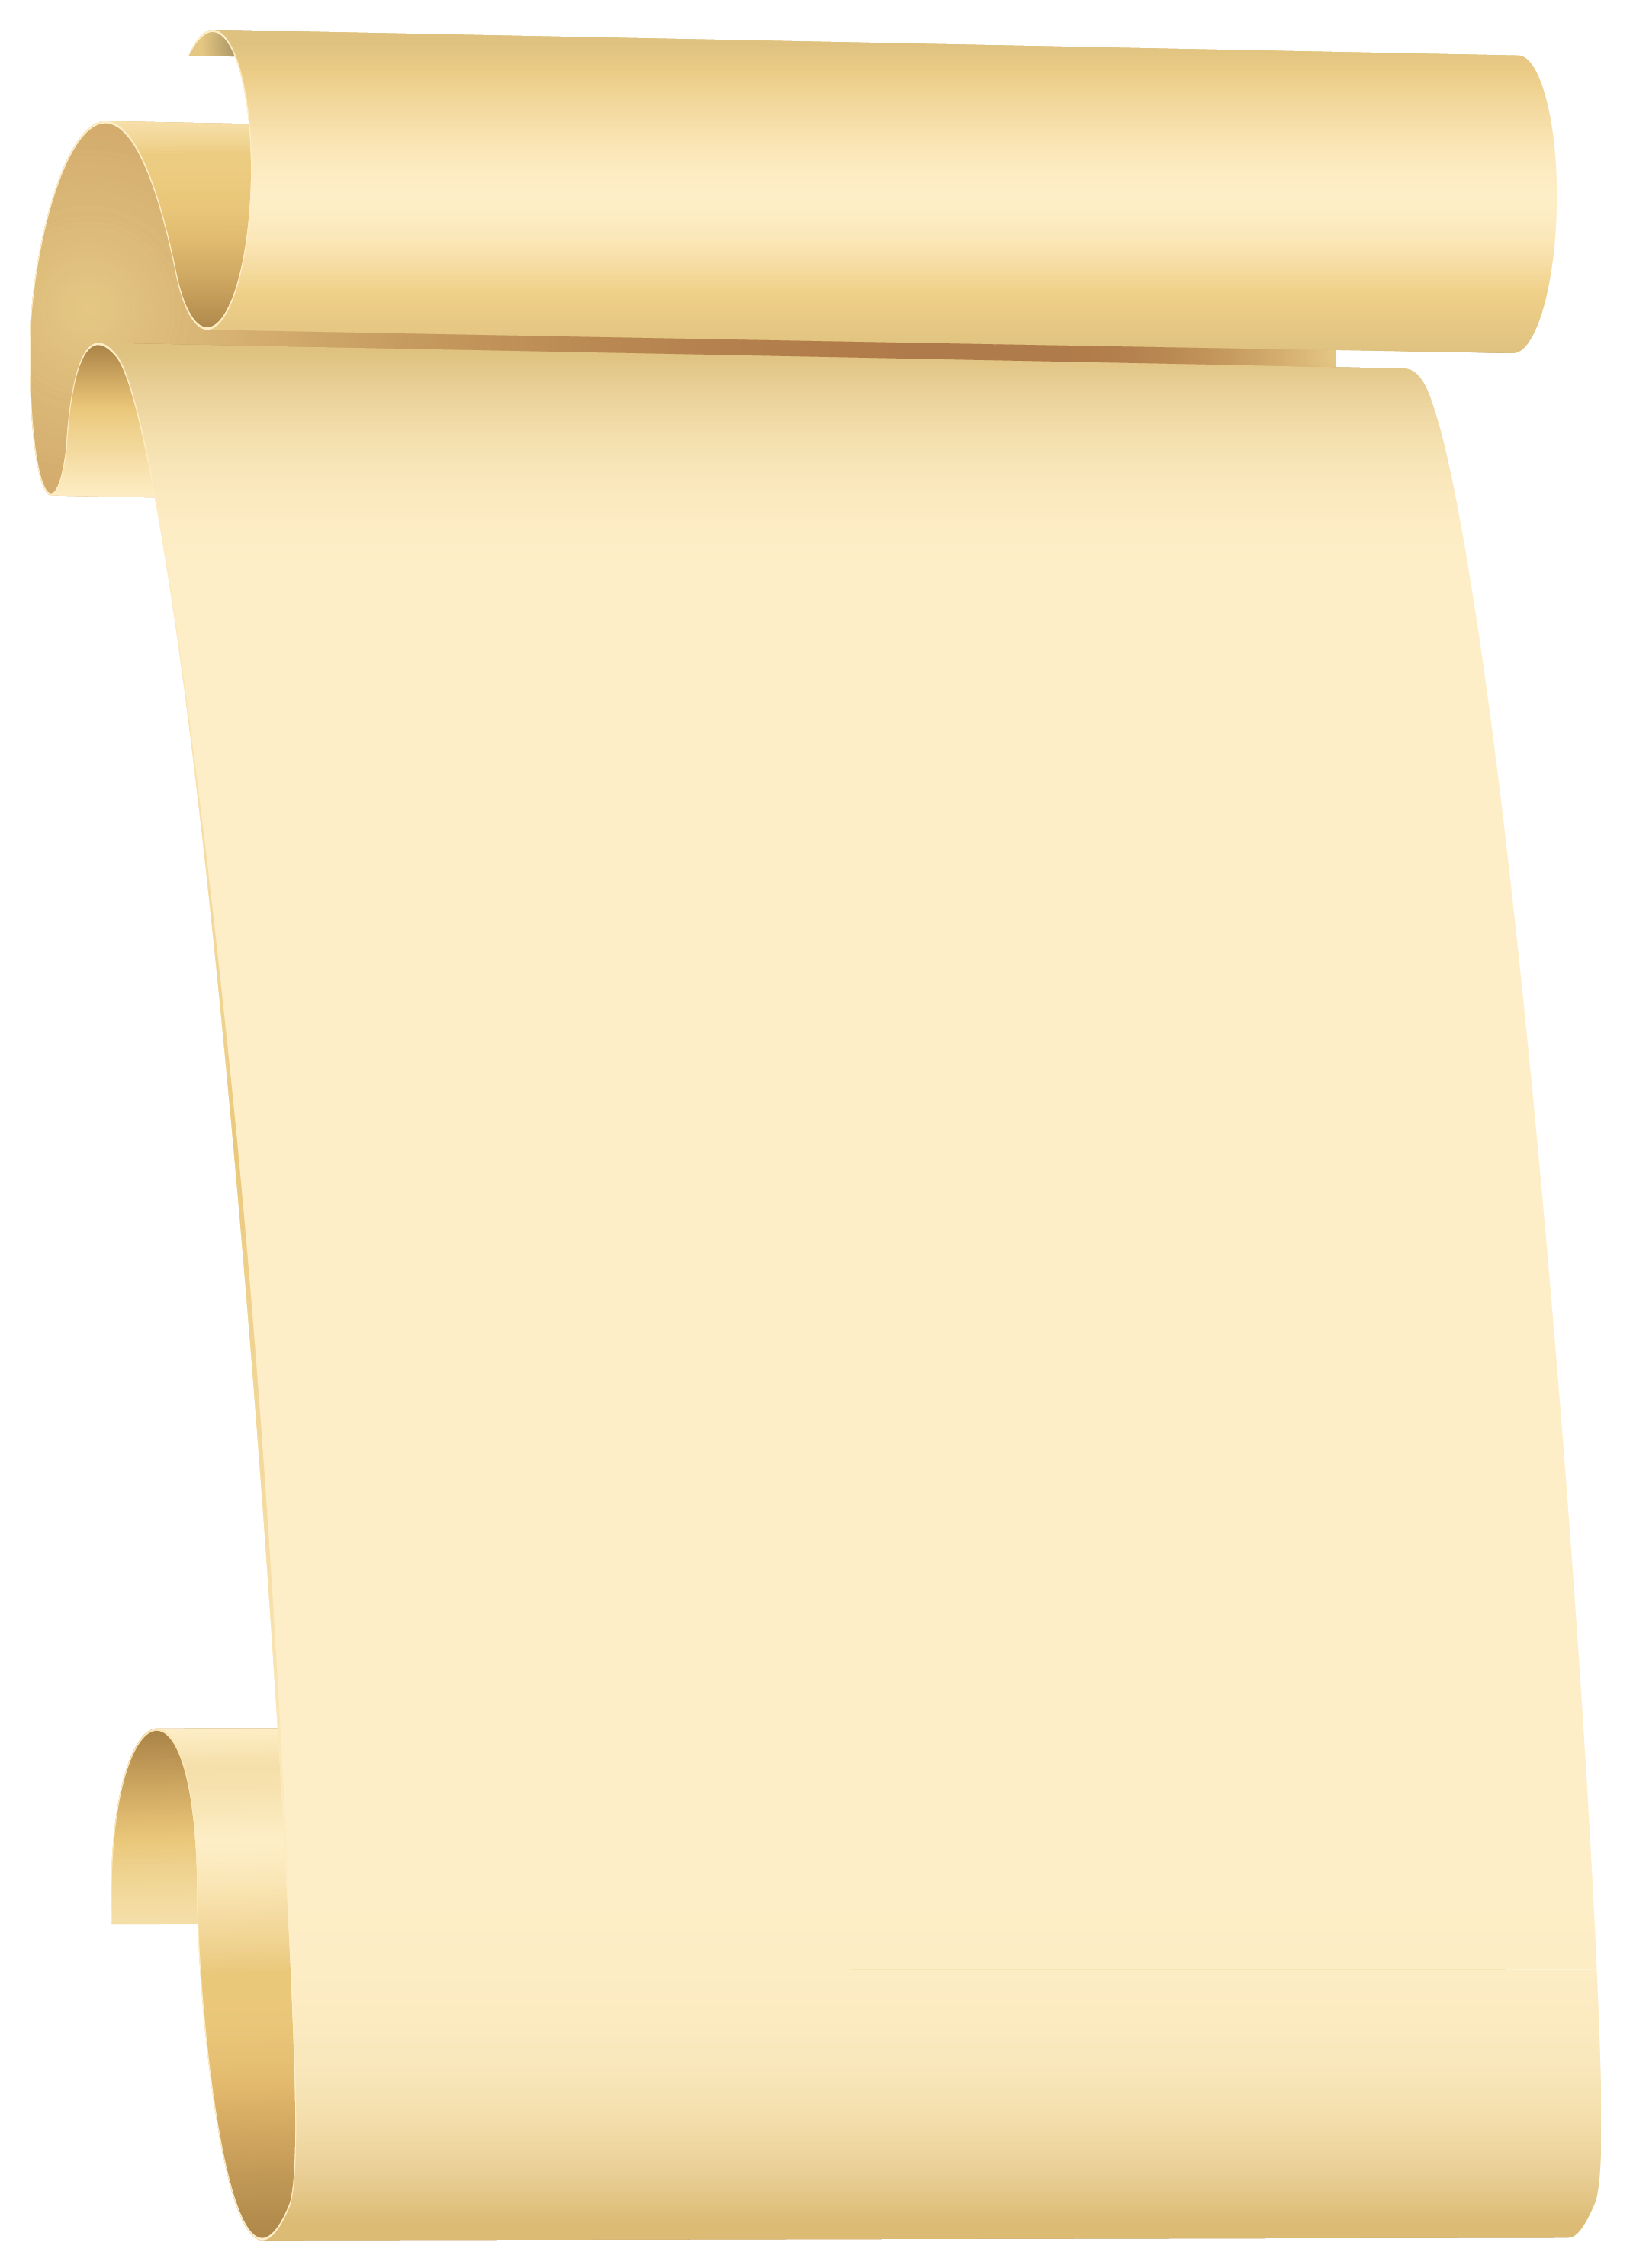 Scroll parchment png. Image gallery yopriceville high